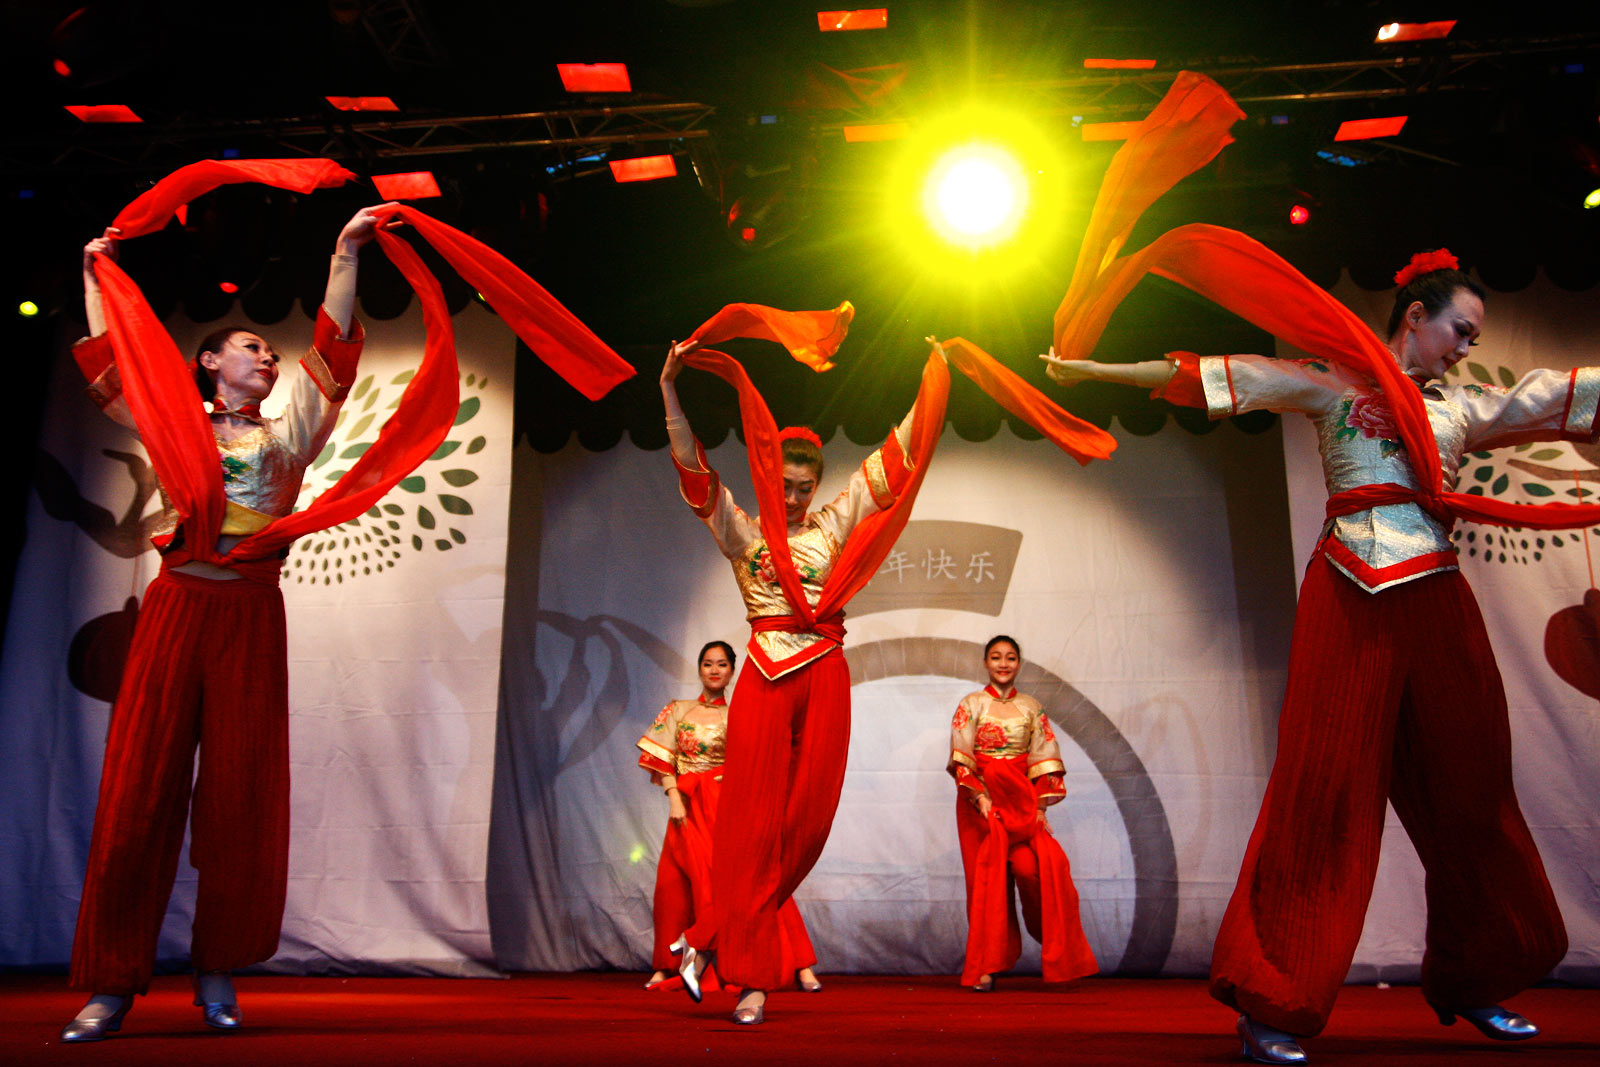 Faith over flair – Chinese New Year celebration shows the magic of Orient